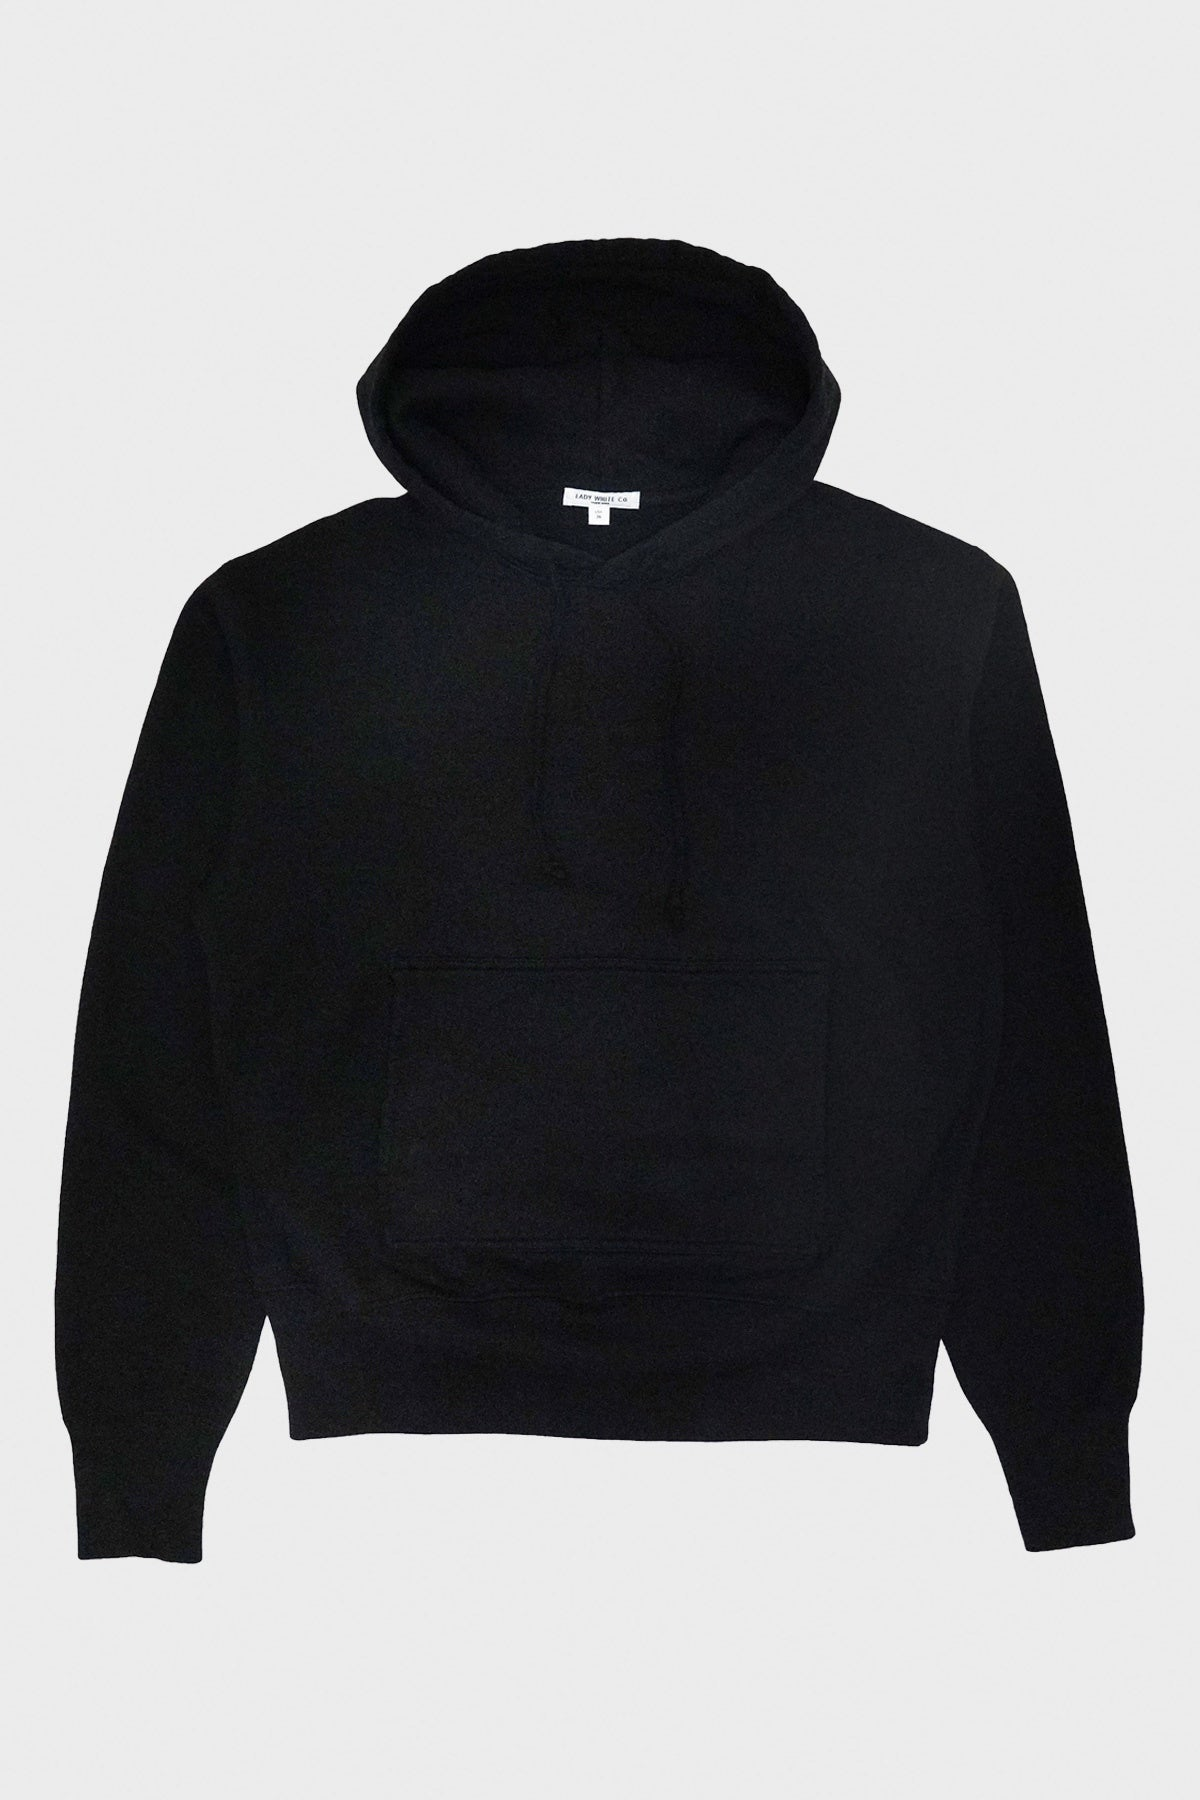 Lady White Co. - Hoodie - Black - Canoe Club